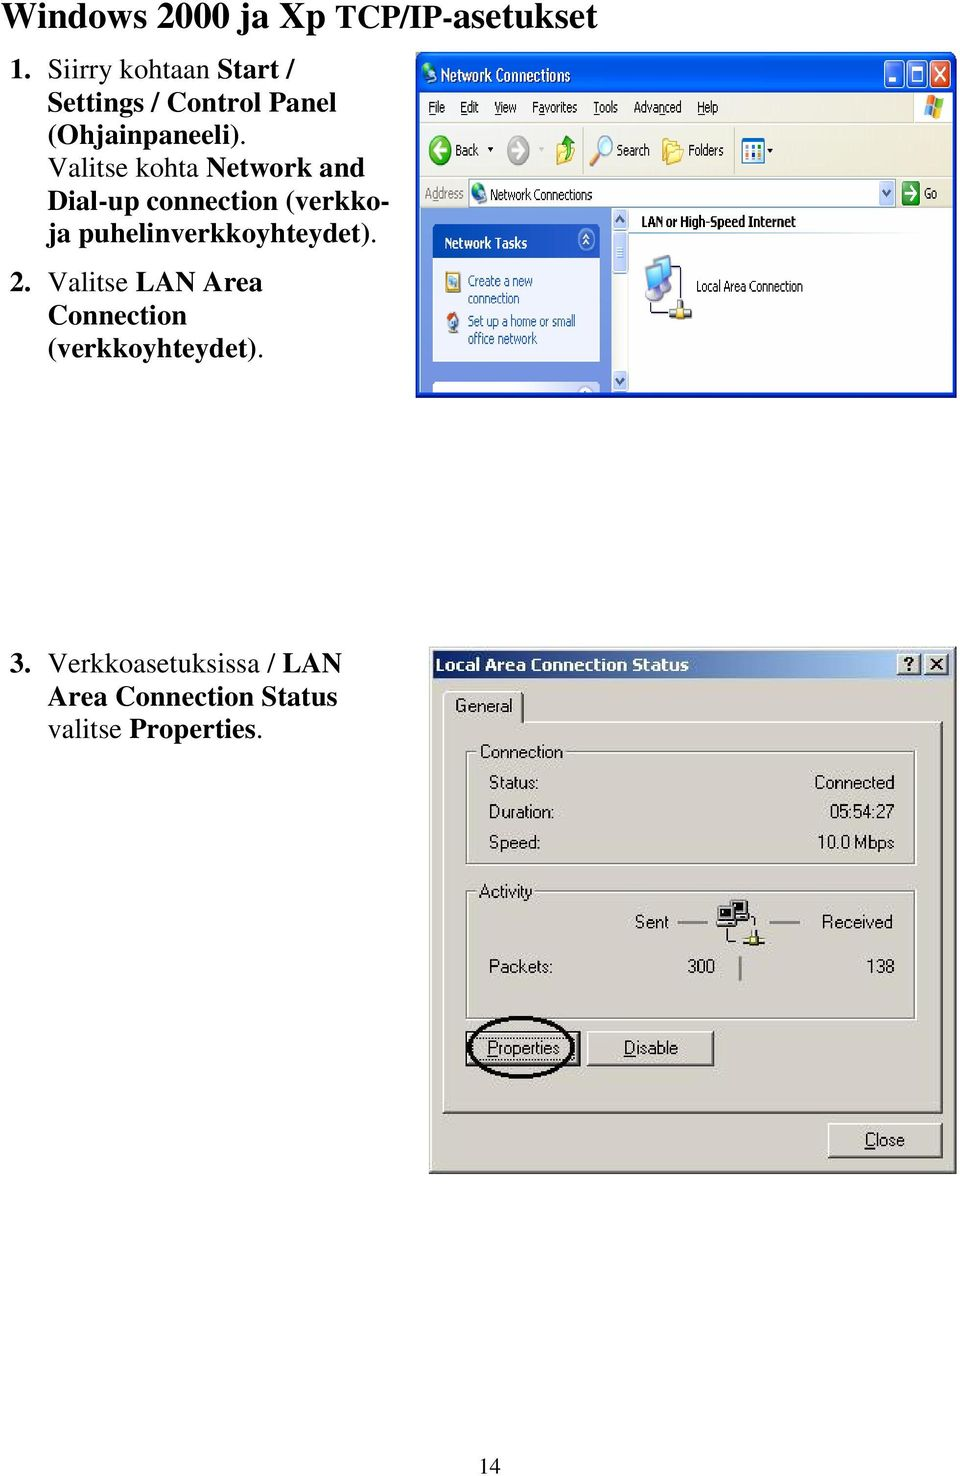 Valitse kohta Network and Dial-up connection (verkkoja